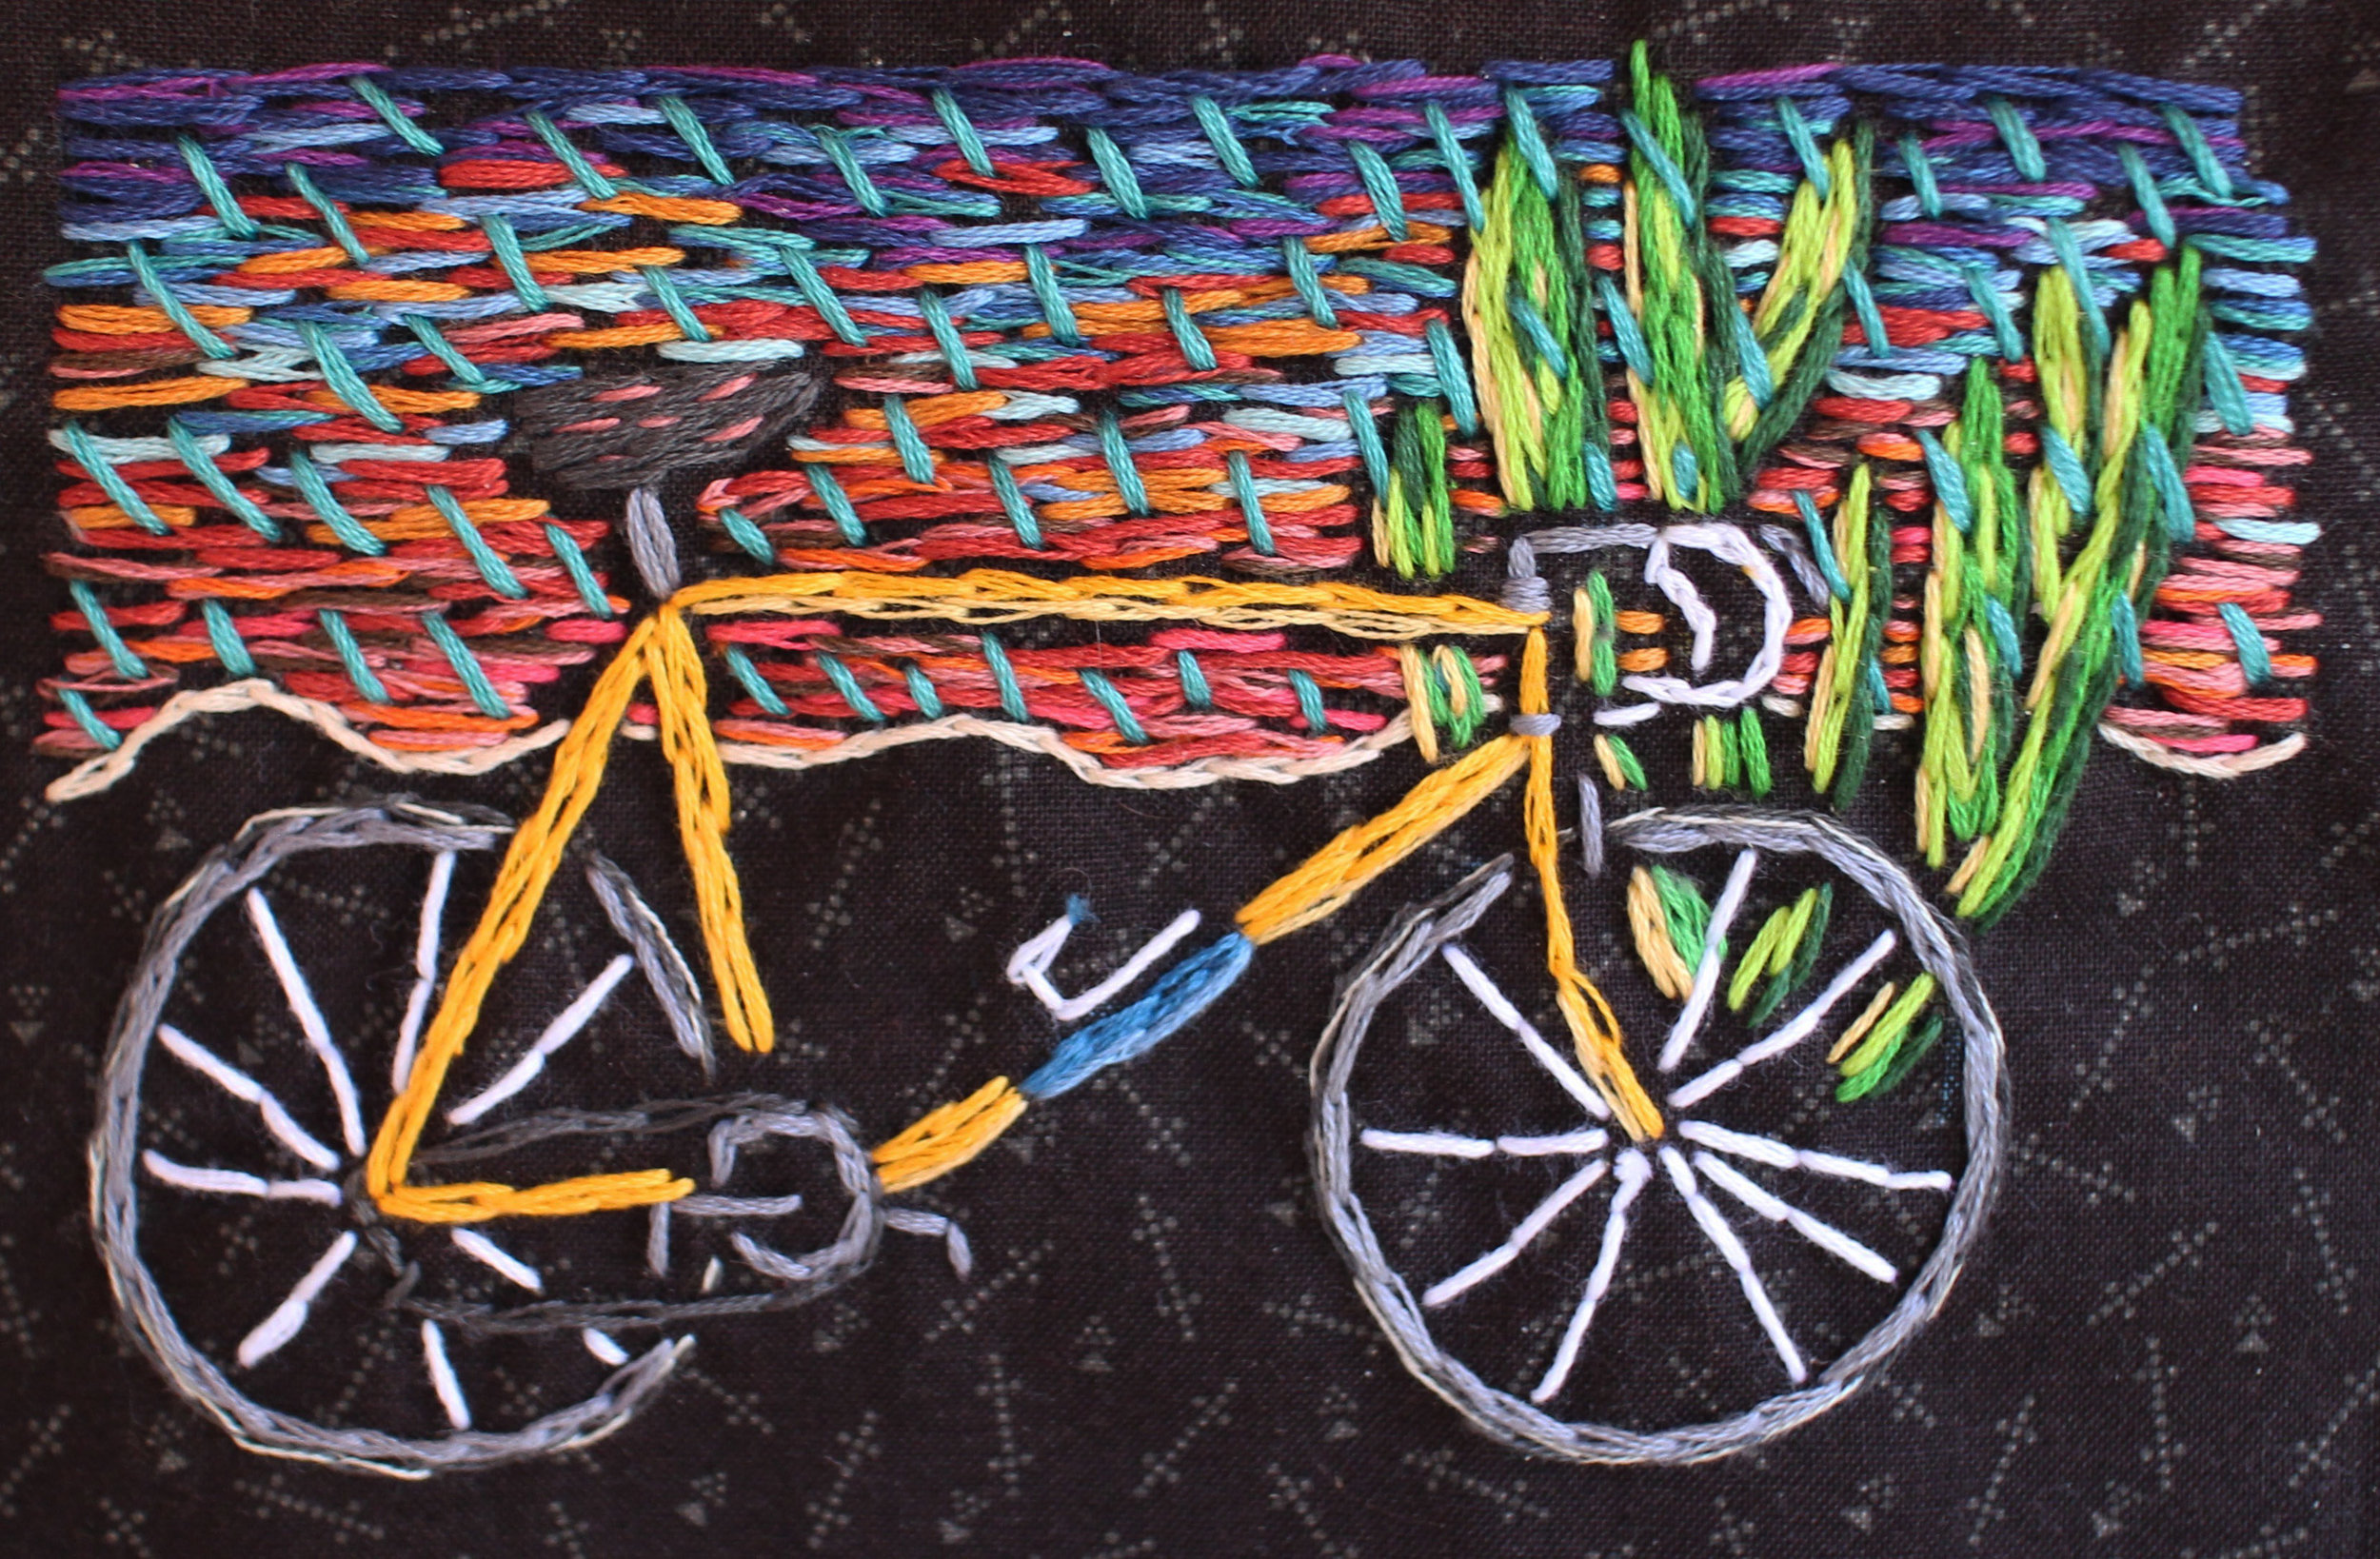 Bicycle and Organ Pipe Cactus   embroidery on fabric  2017